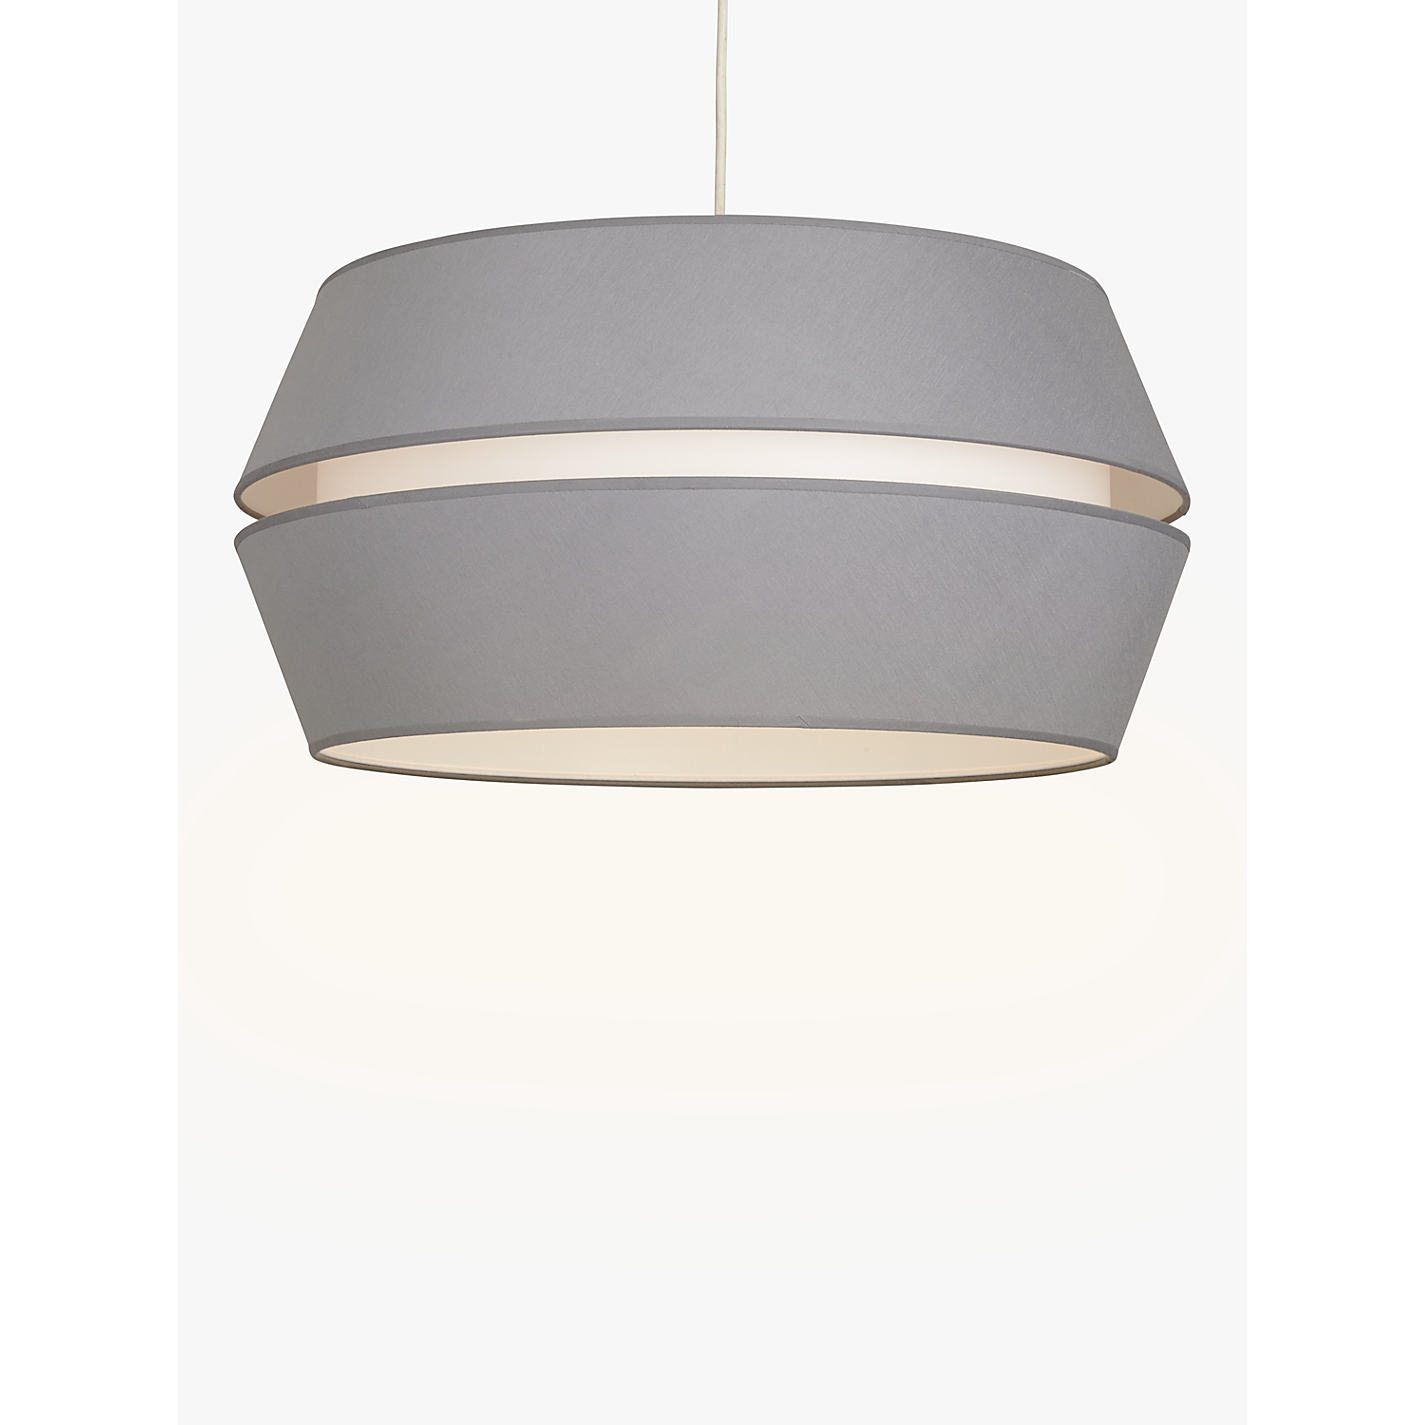 Ceiling Light Fittings At John Lewis : John lewis ceiling light shade decoratingspecial